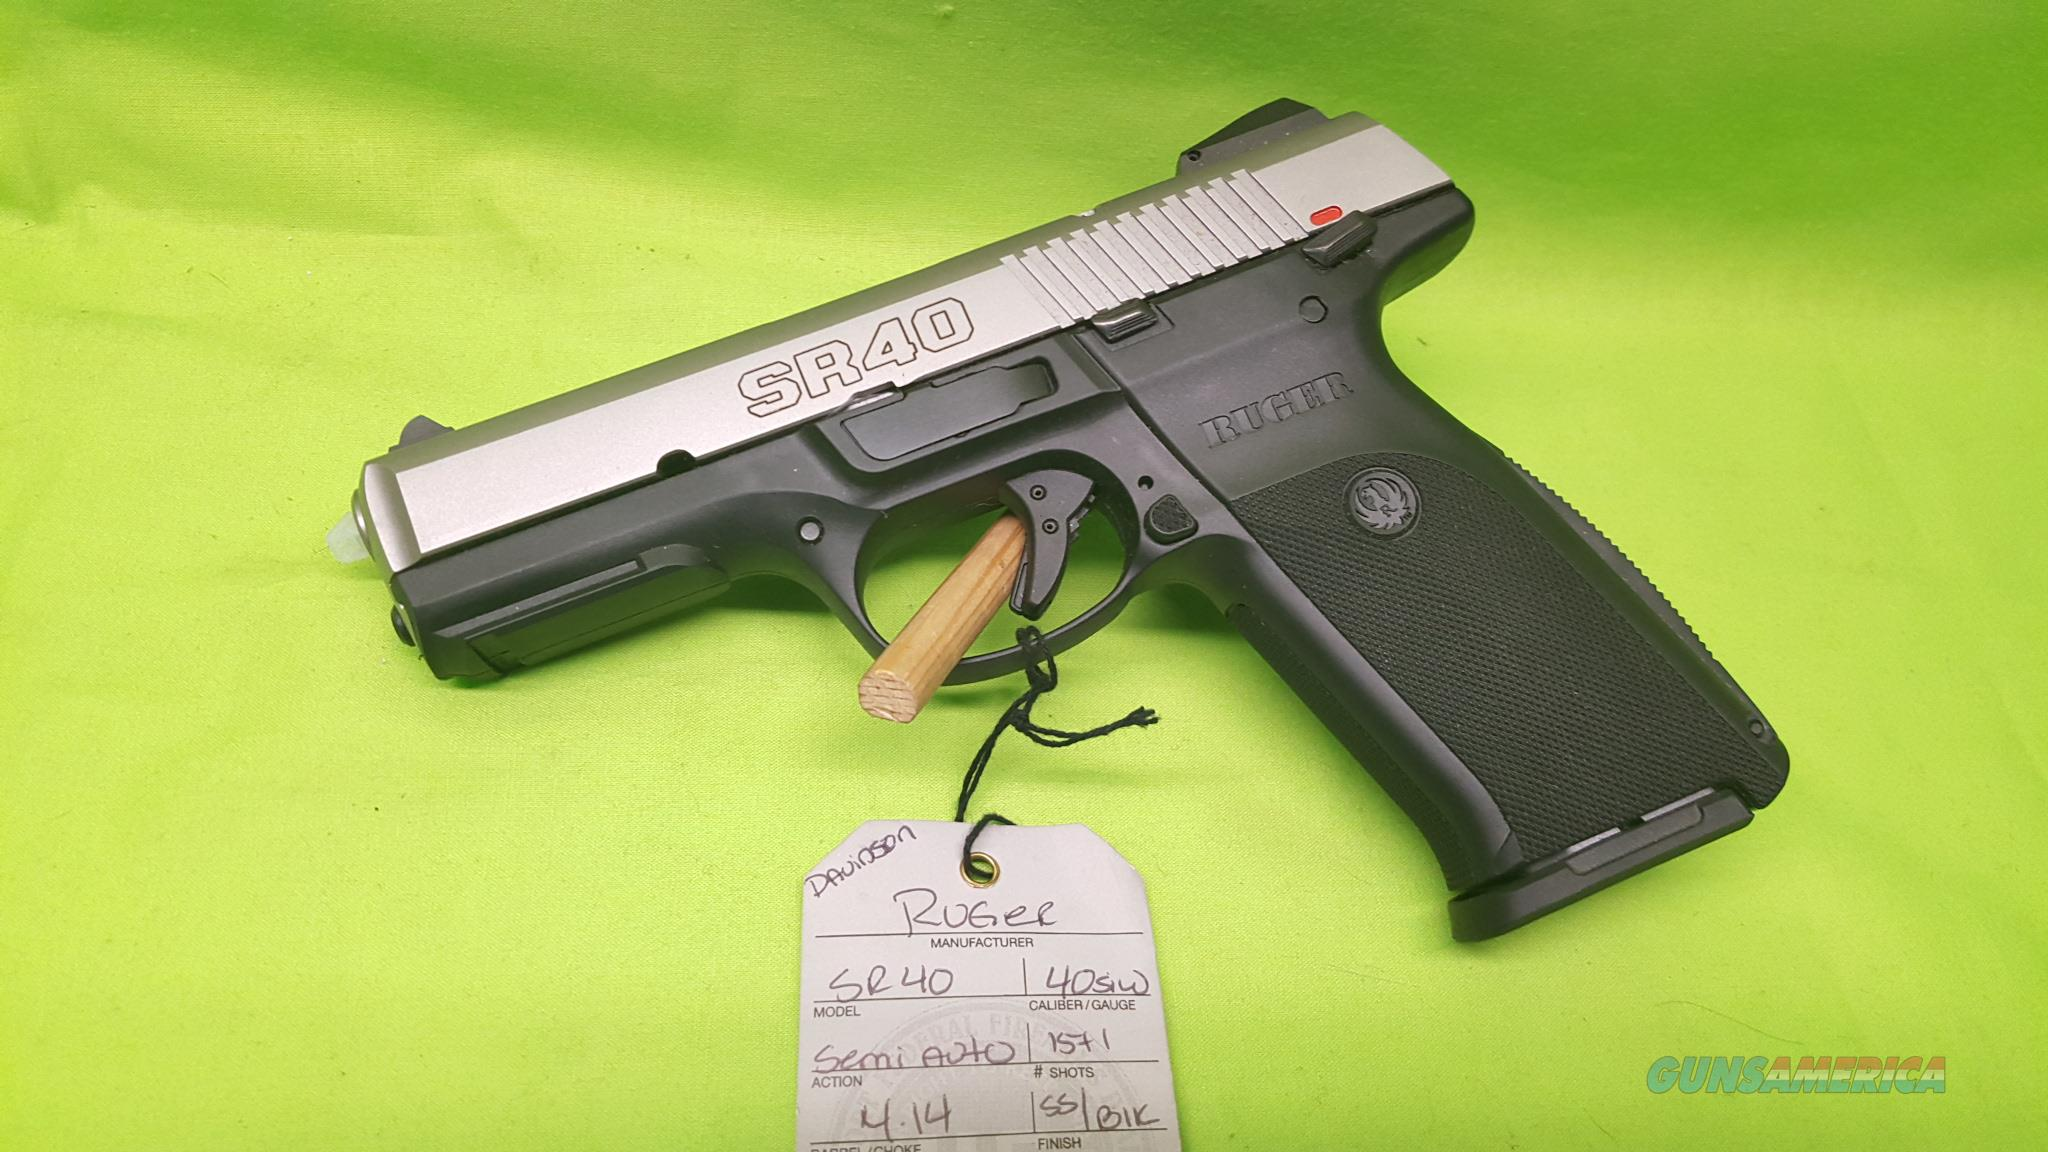 Ruger SR40 Stainless 40 S&W .40 2-15RD MAGS 3470  Guns > Pistols > Ruger Semi-Auto Pistols > SR Family